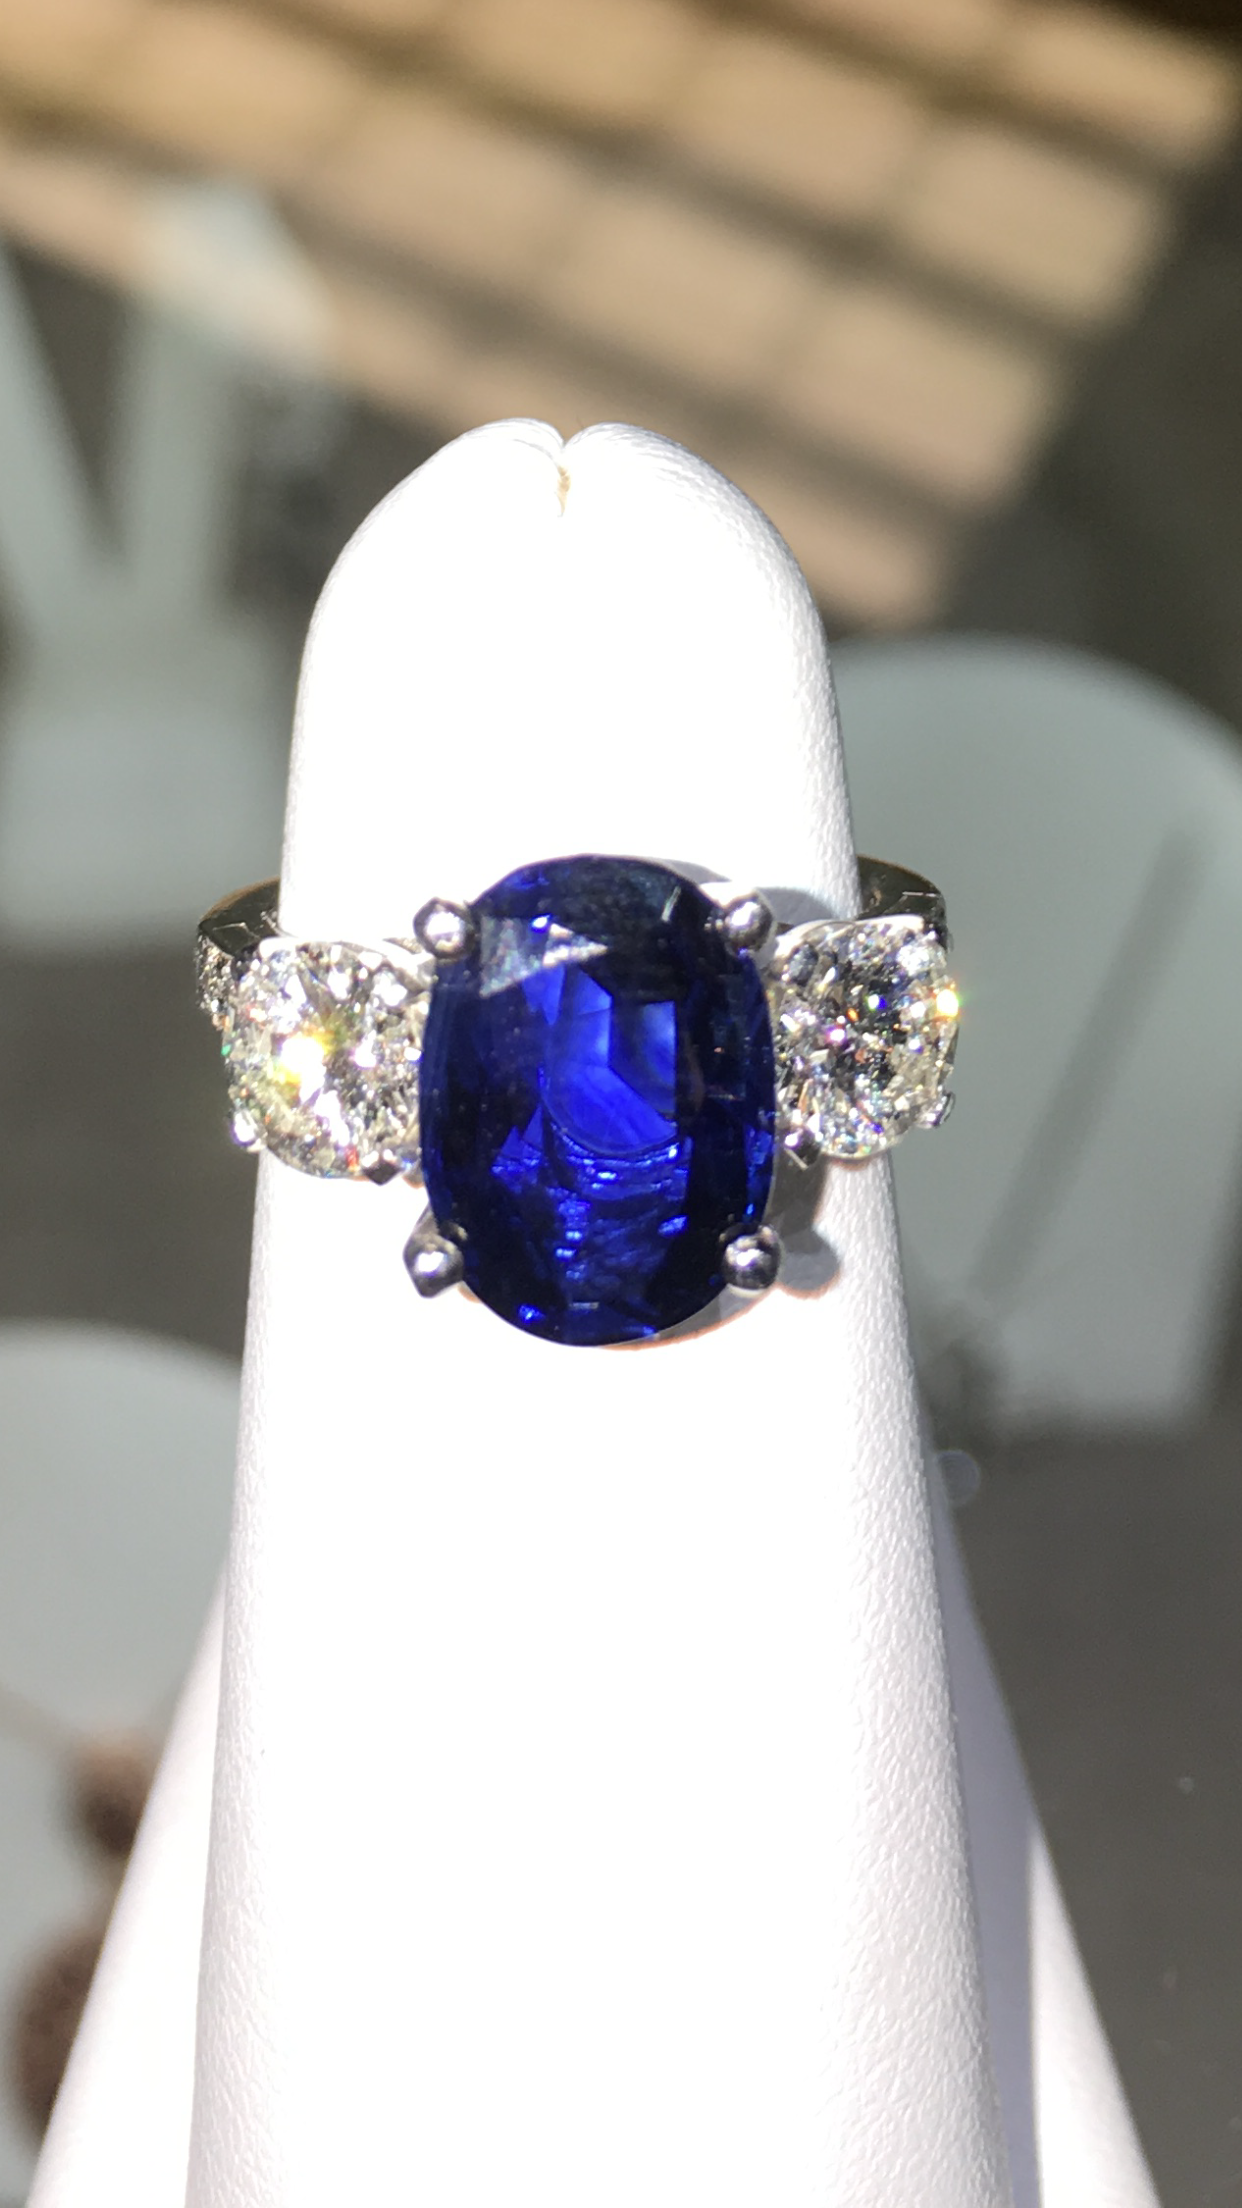 8b6dfb3021681 Tiffany 4 carat sapphire ring set on platinum flanked by two half ...